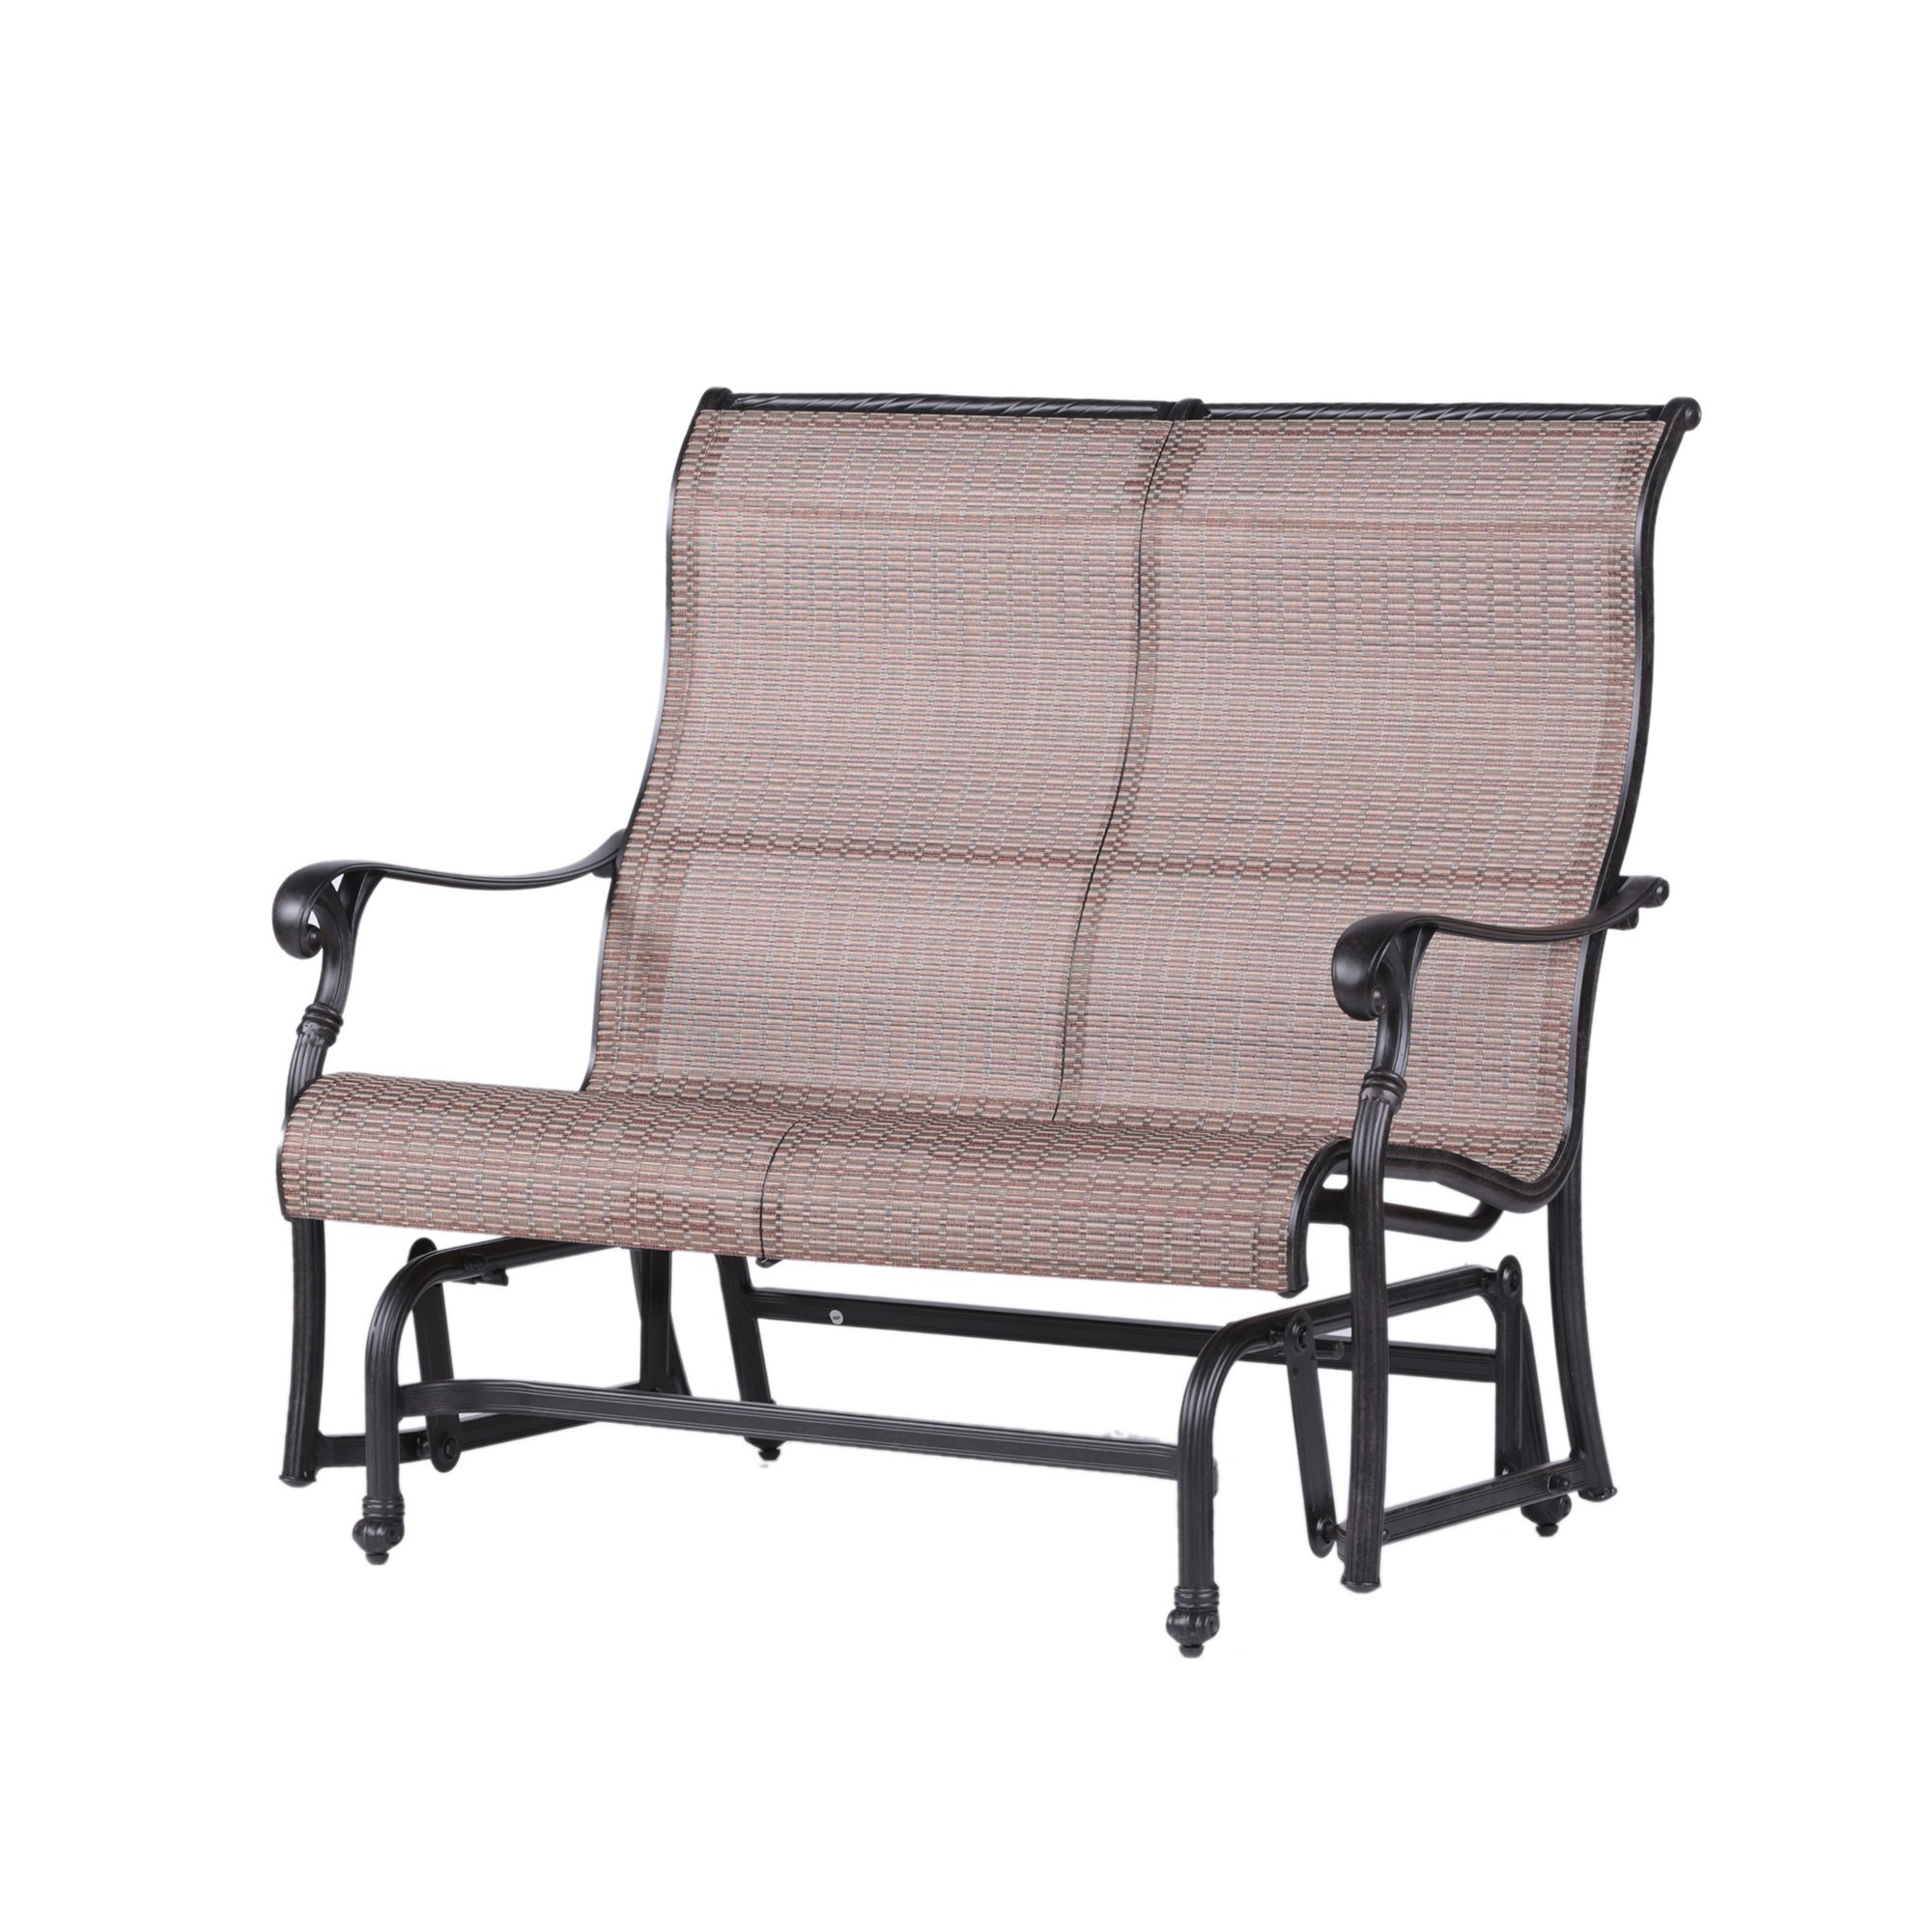 Patio Sparta Sling Double Glider, Outdoor Metal Glider In Most Up To Date Sling Double Glider Benches (View 4 of 30)